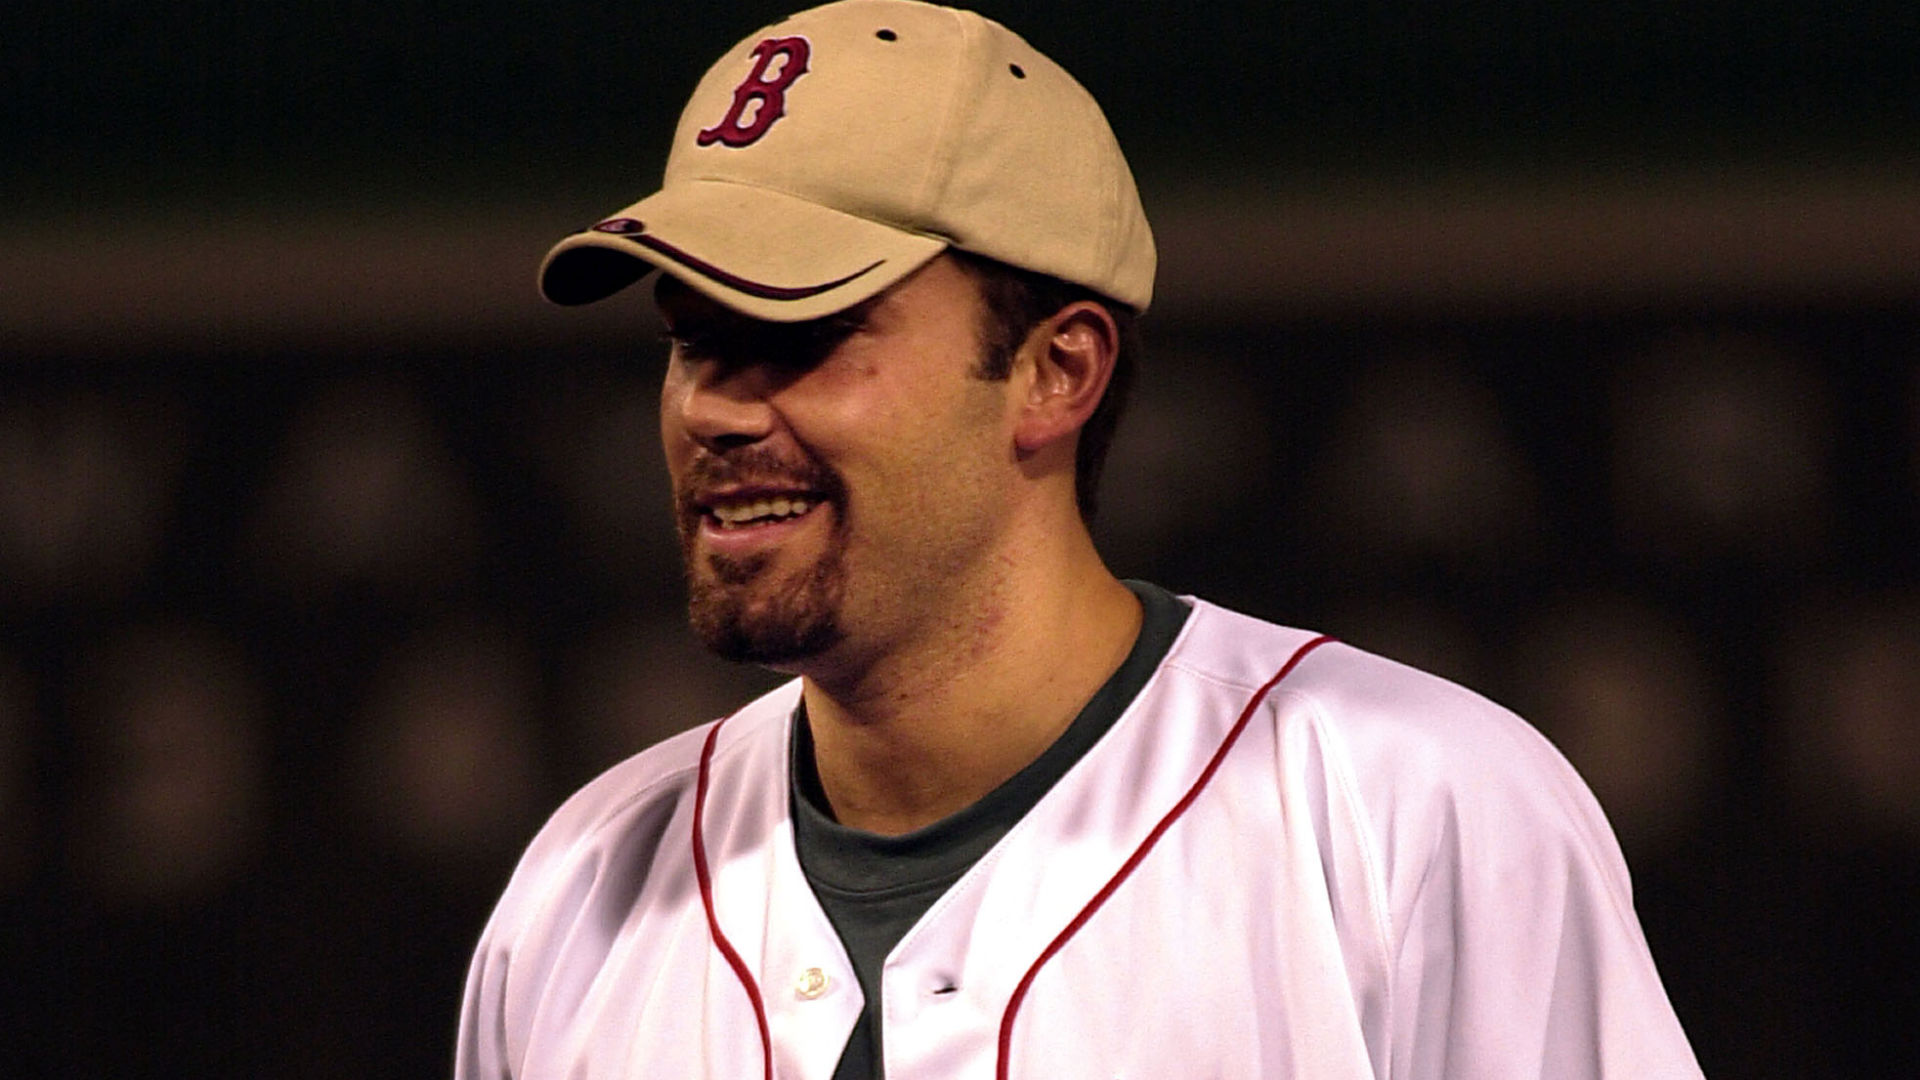 83b46d8a163 Ben Affleck refused to wear a Yankees cap in  Gone Girl